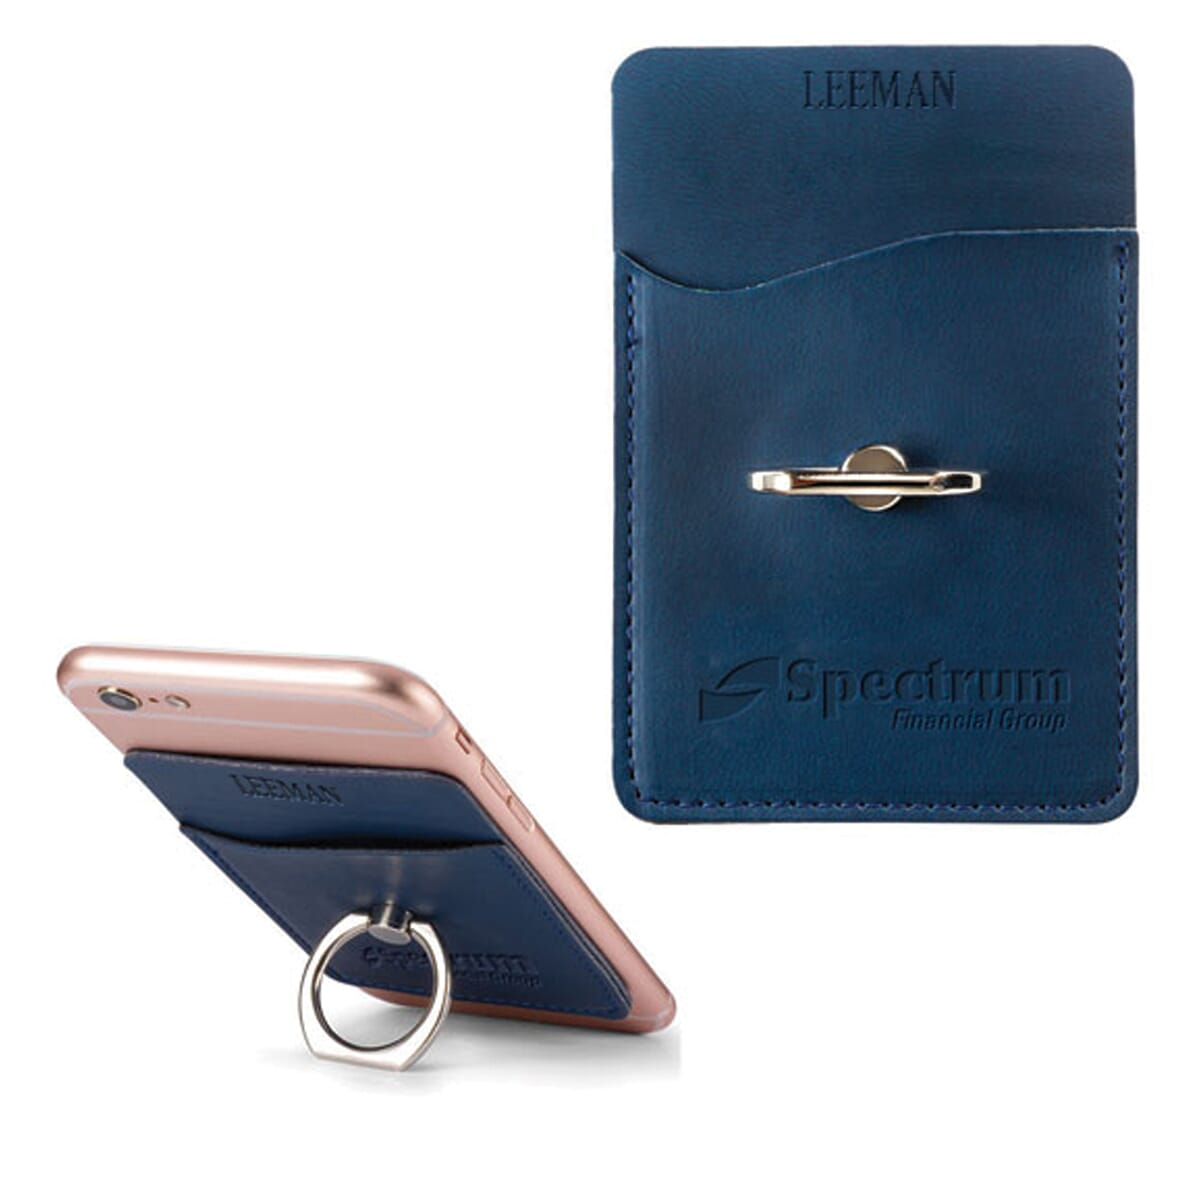 Dark blue leather-like phone wallet with silver ring grip and debossed logo.